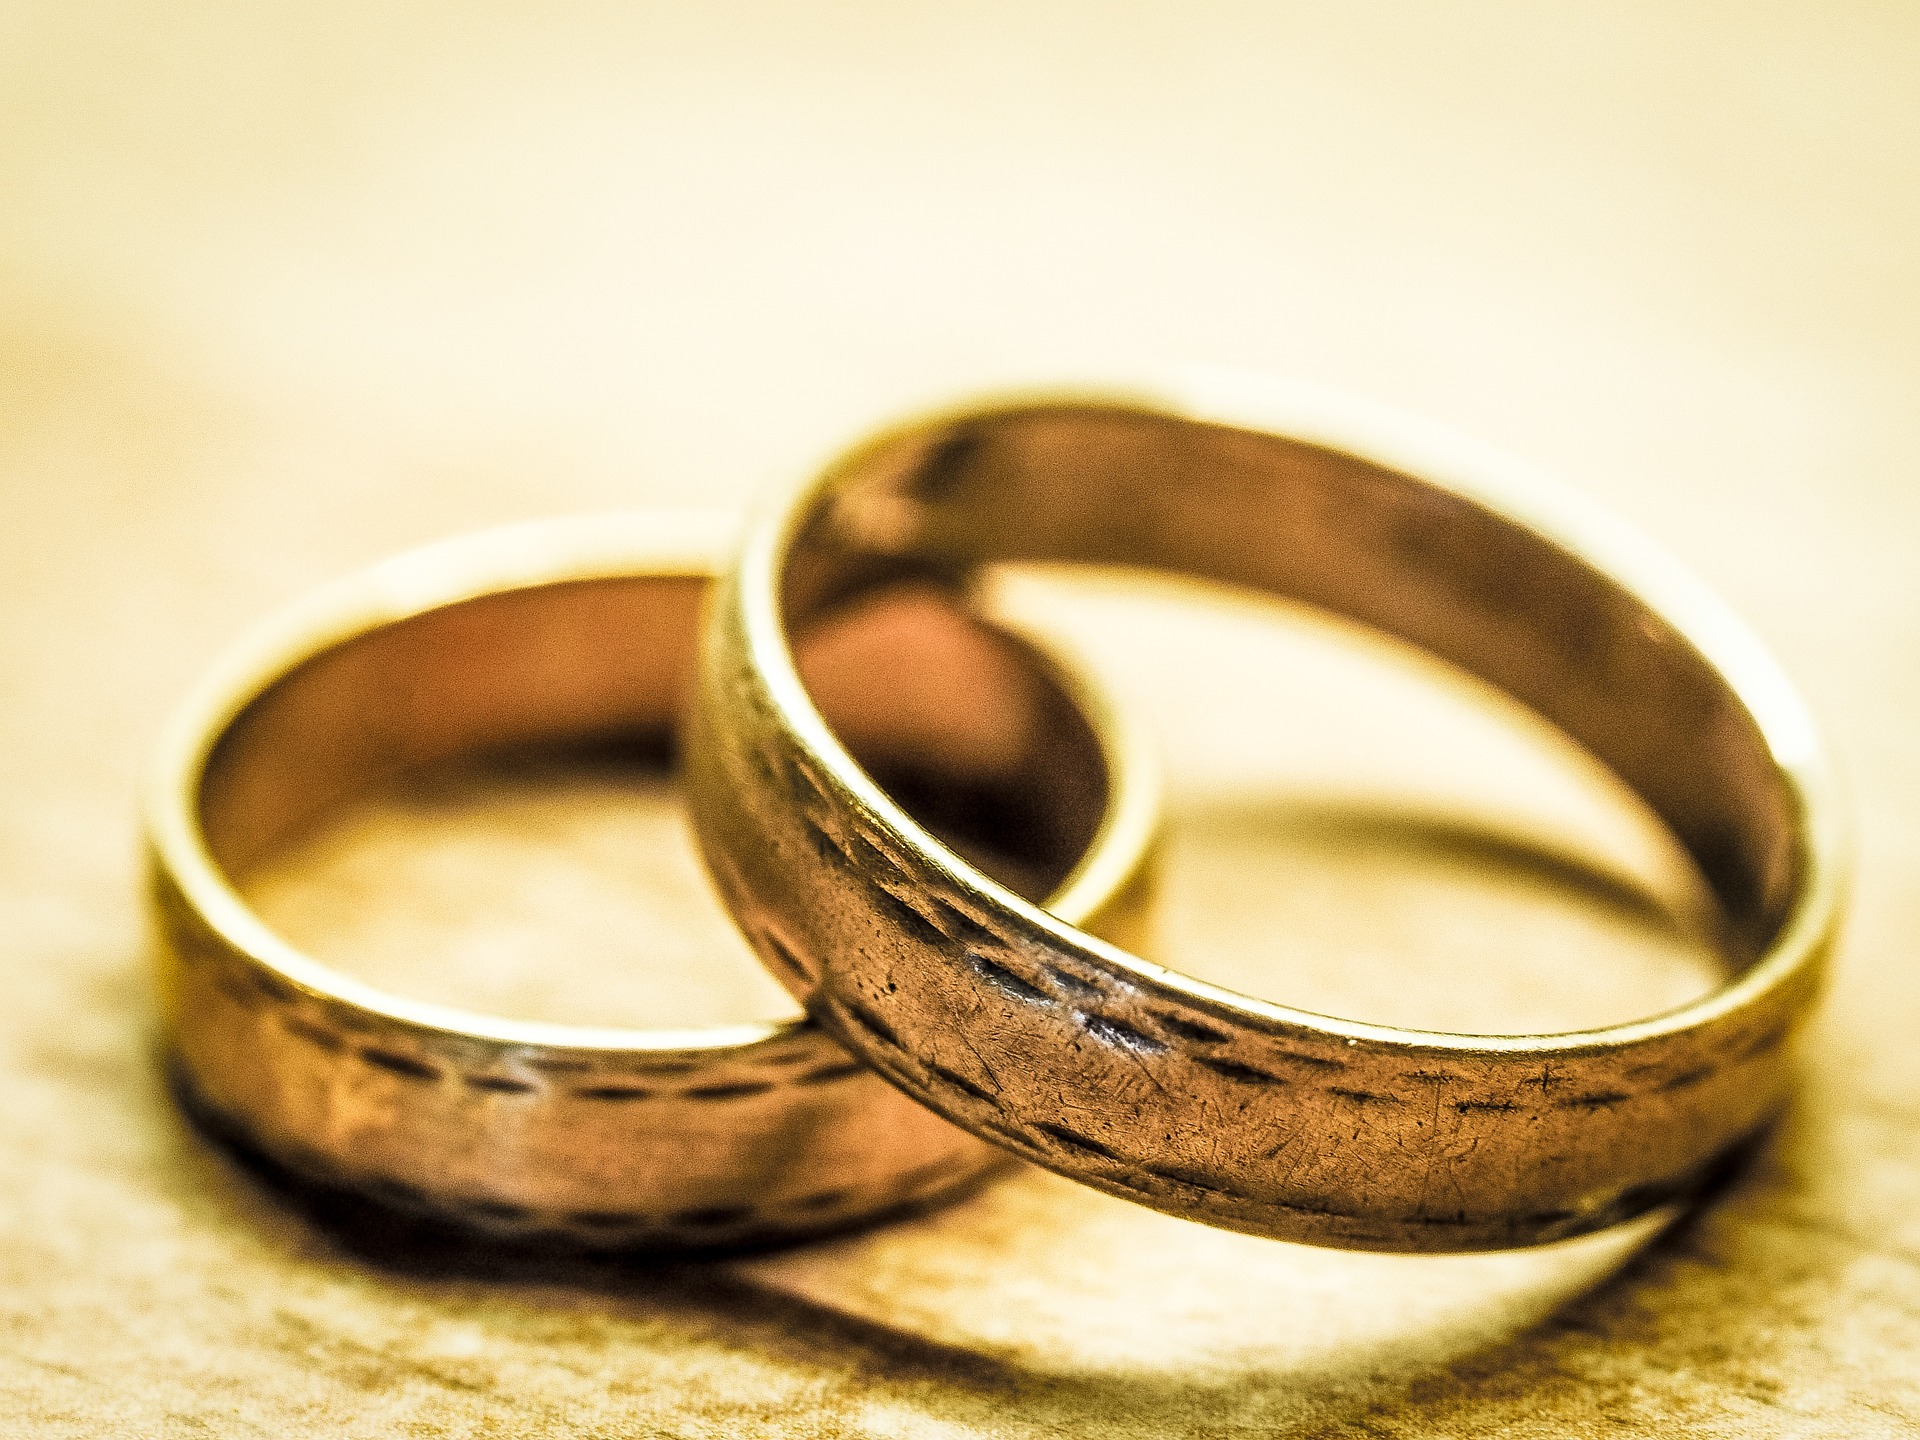 Pair of gold wedding rings